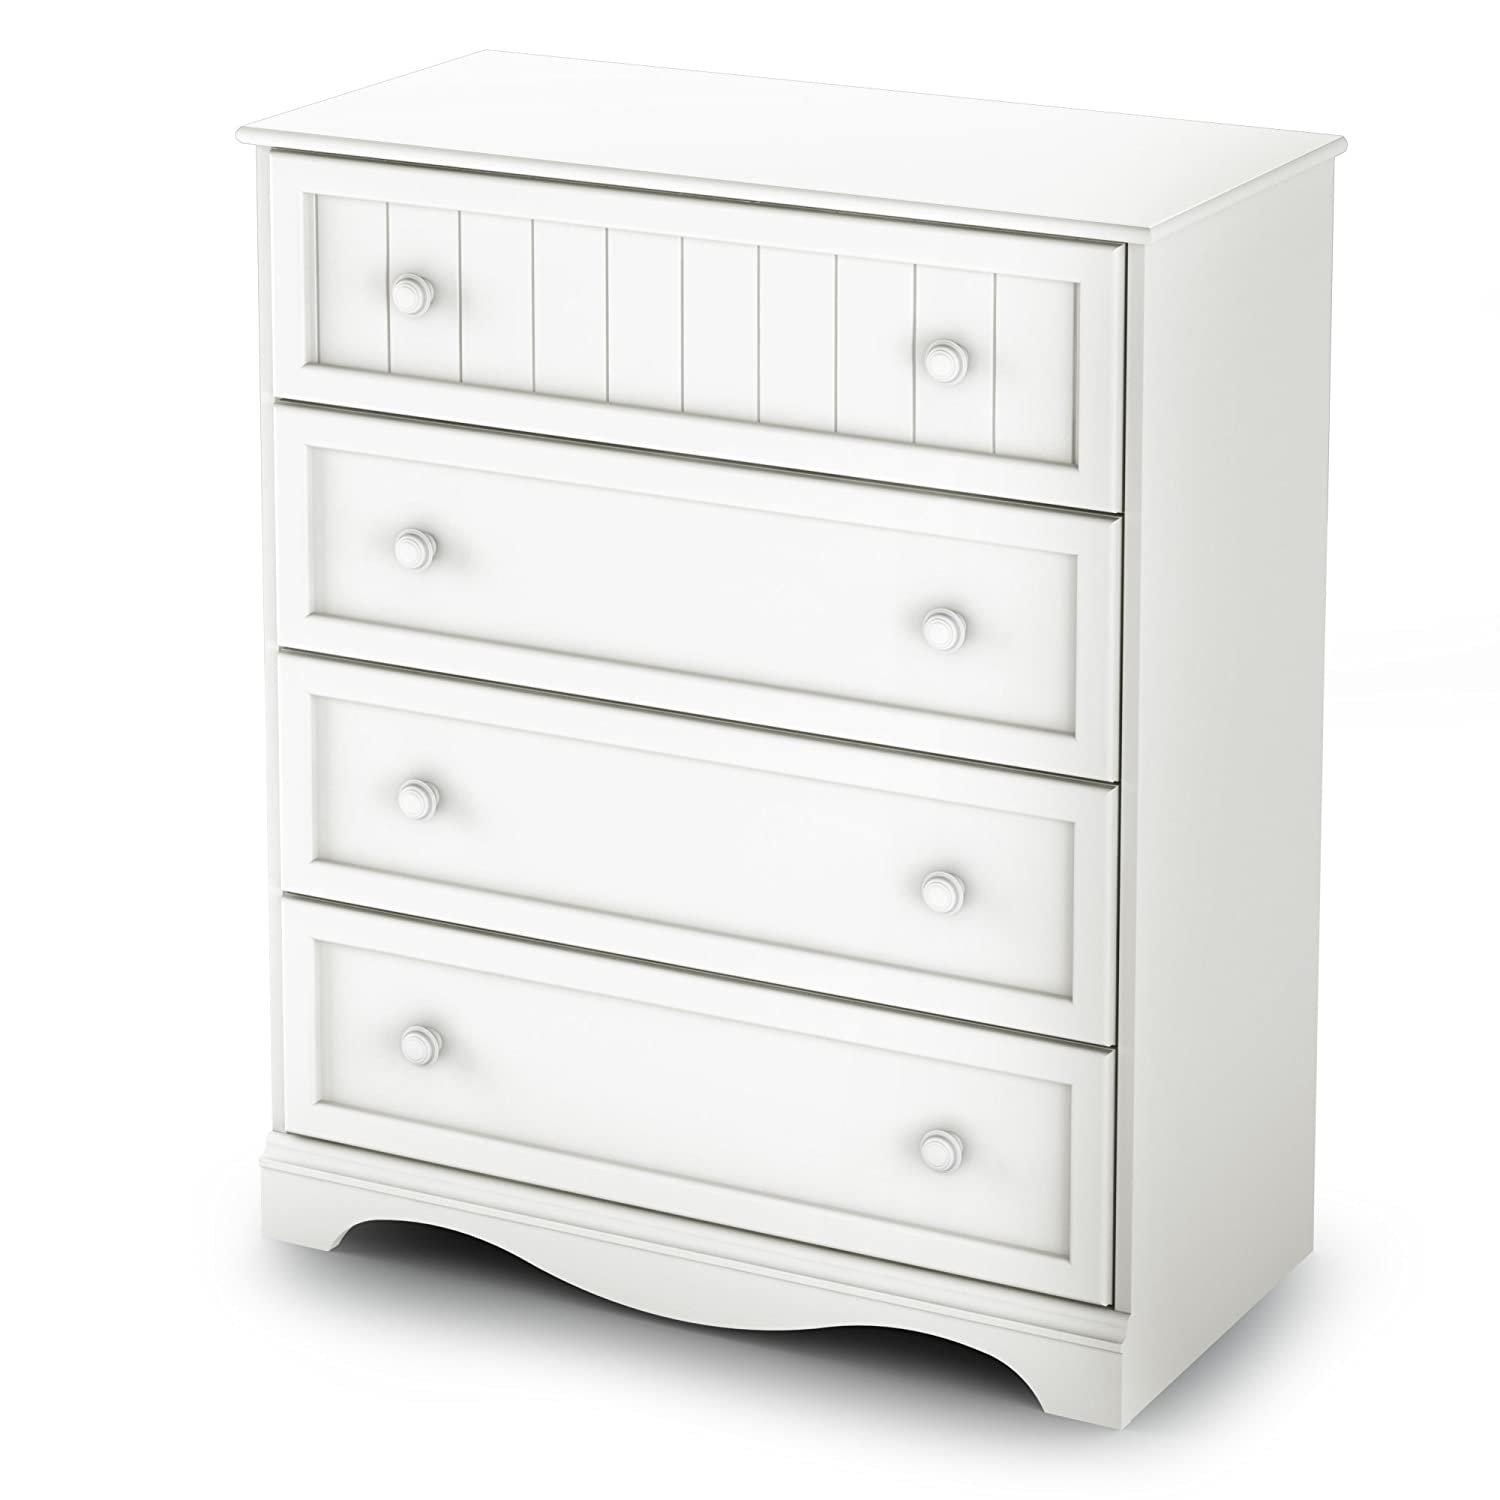 Top 10 Best Bedrooms Dressers (2020 Reviews & Buying Guide) 9